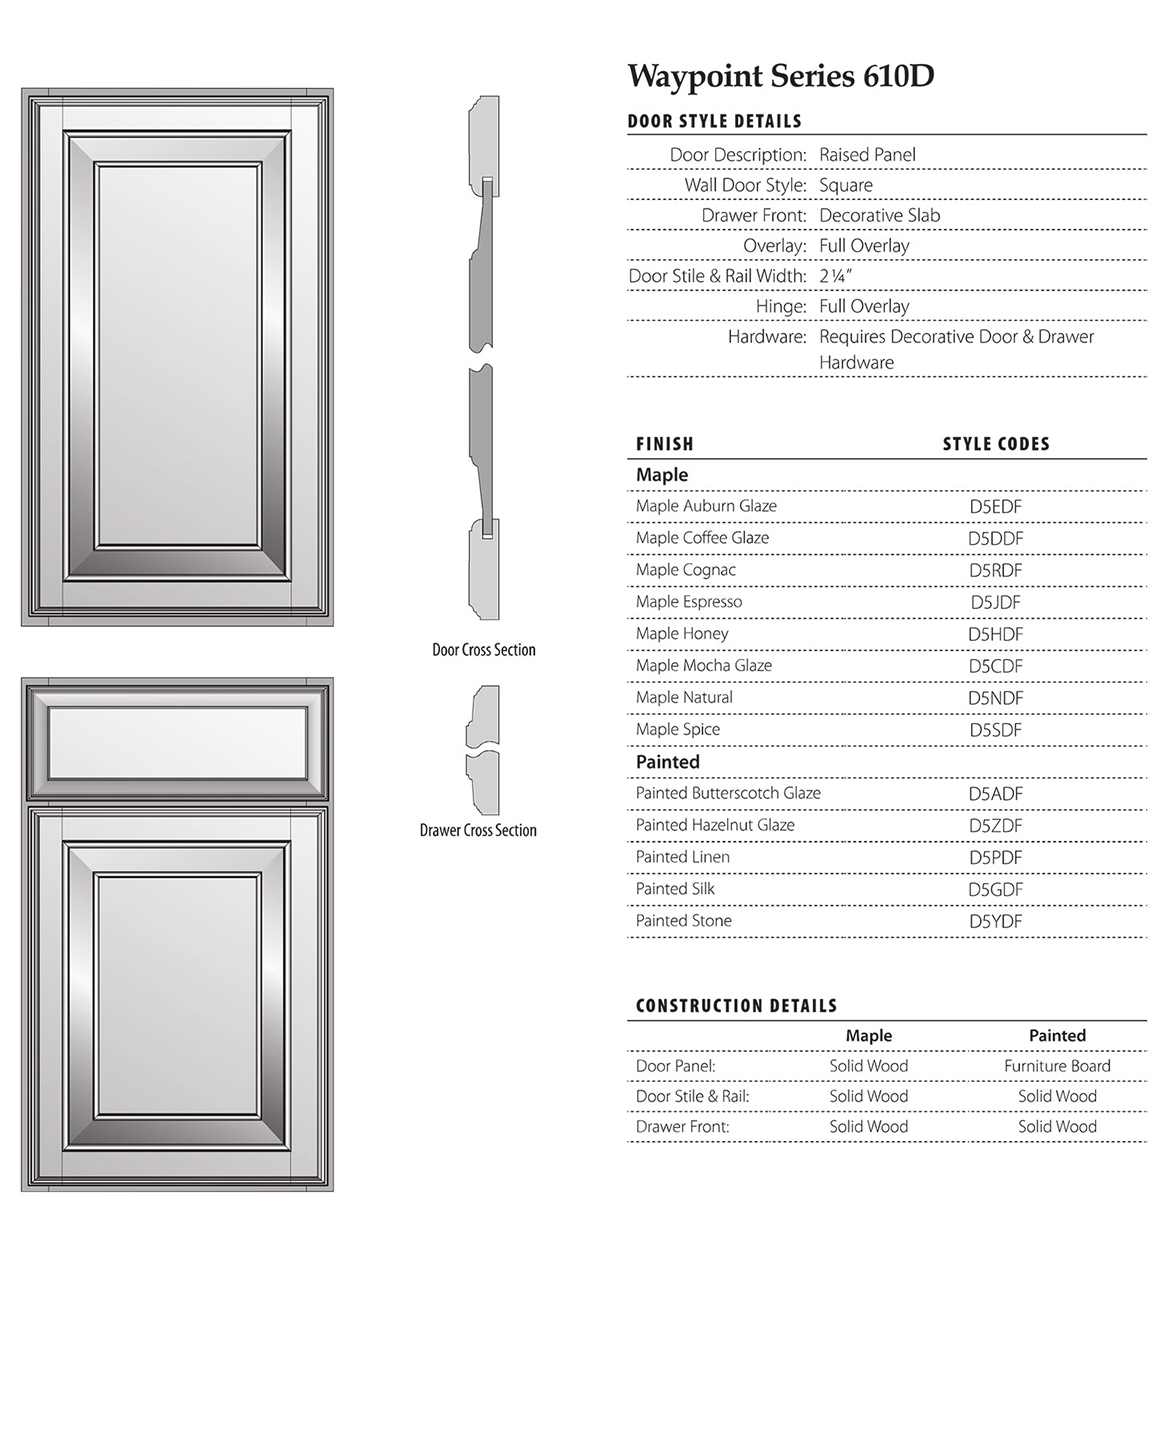 Waypoint Living Spaces 610d